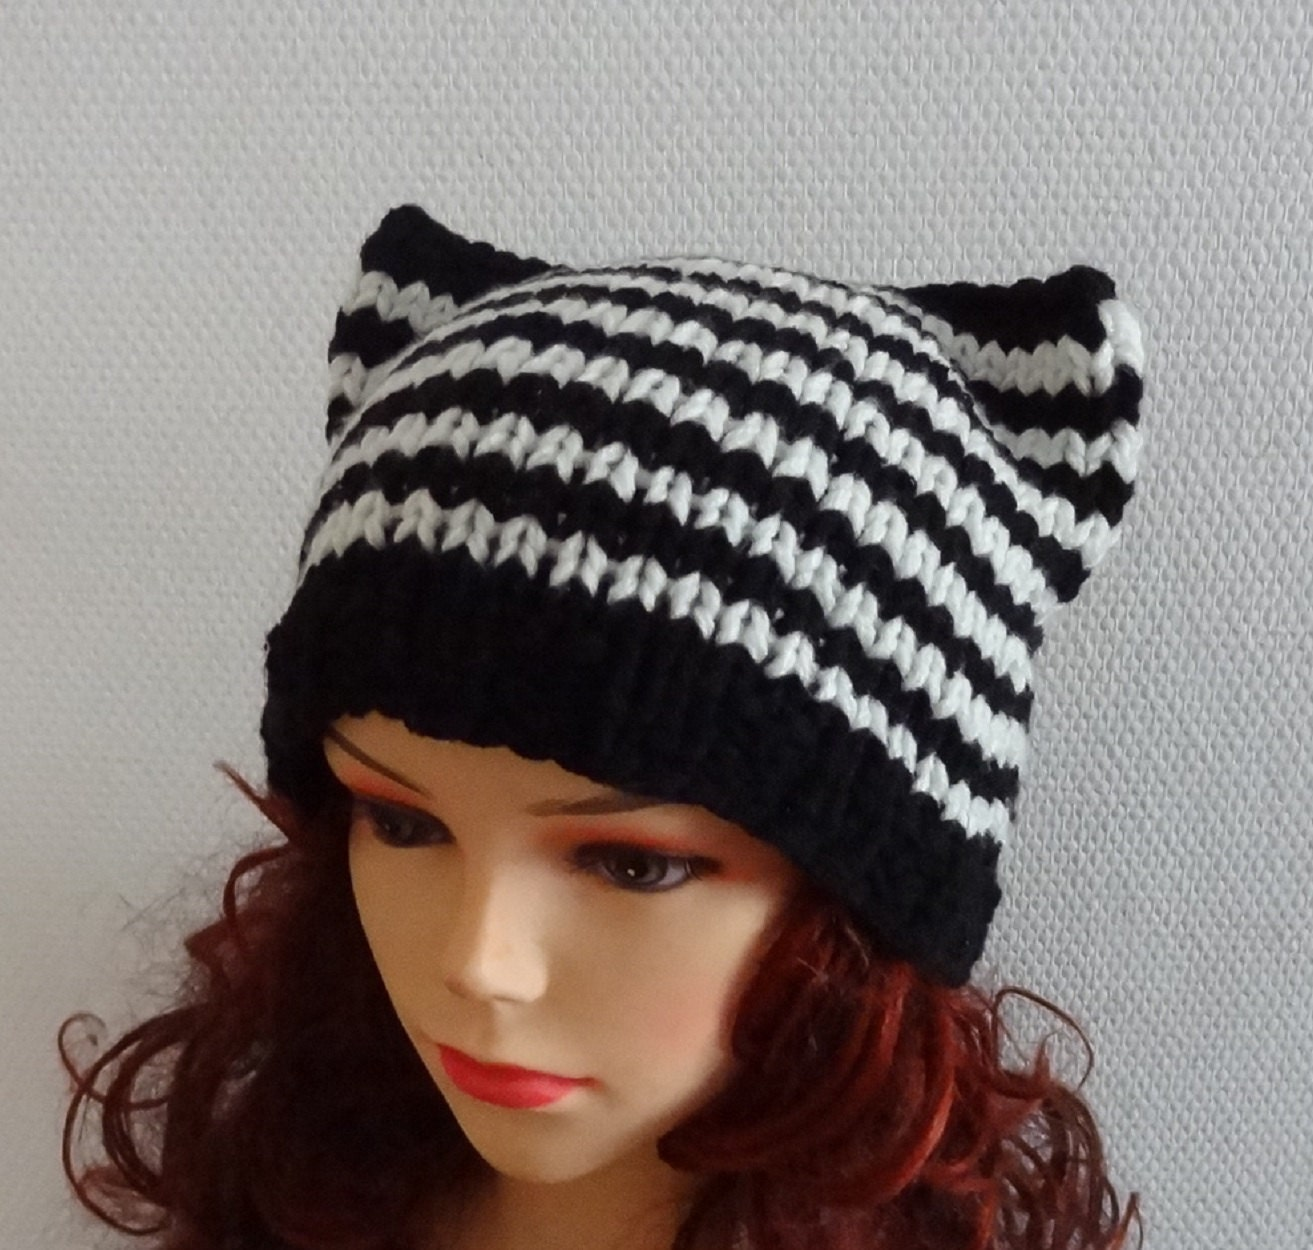 Knitting Pattern For Beanie With Ears : Cat Ears Hat Cat Beanie Chunky Knit Winter Accessories by ...